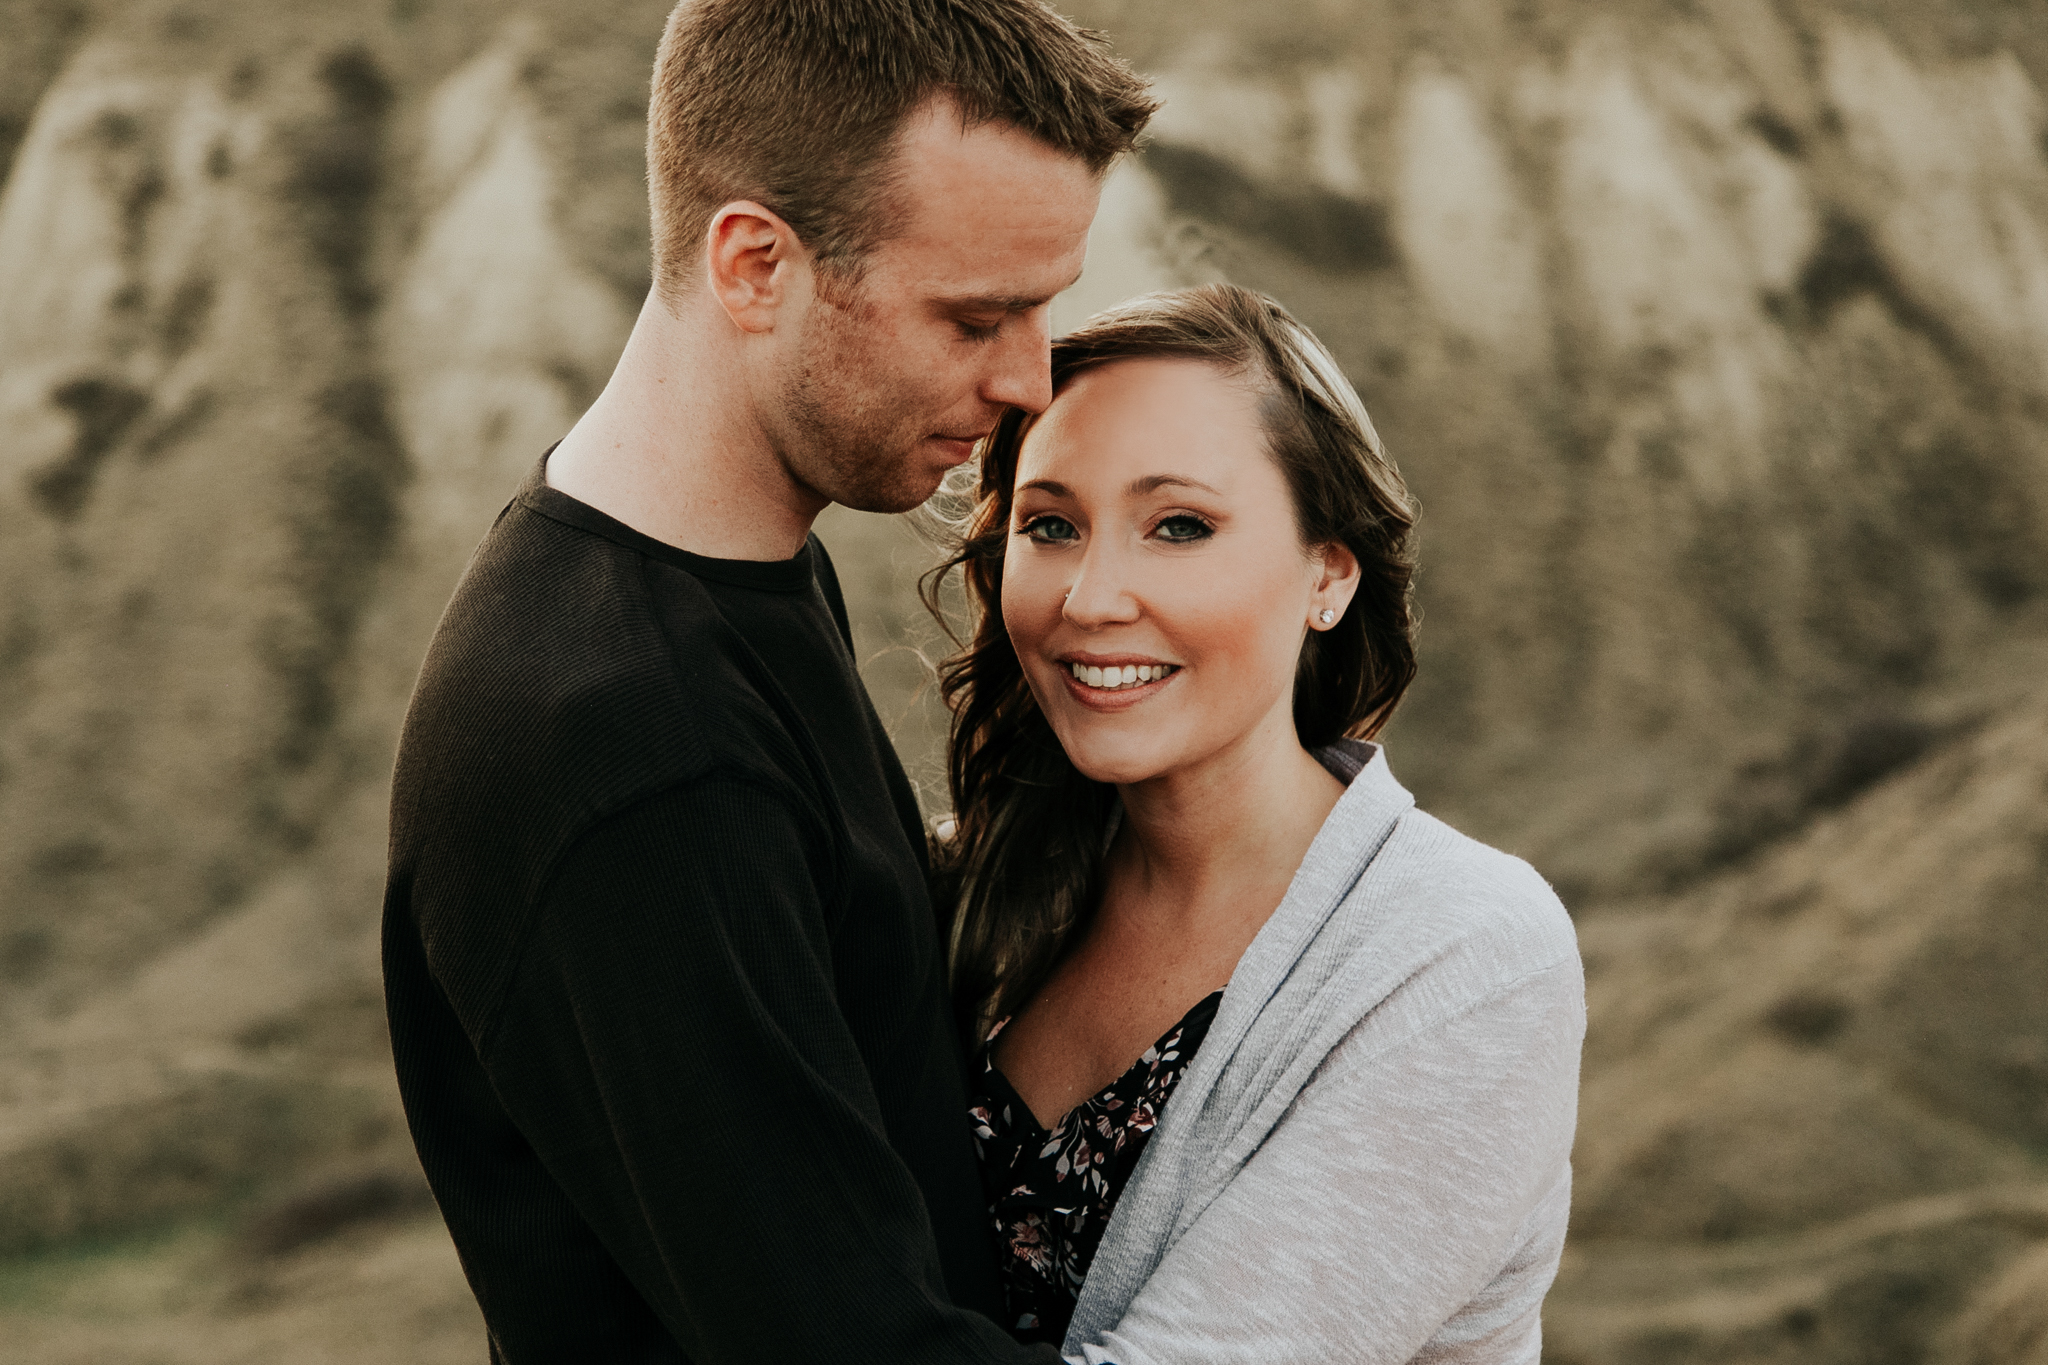 lethbridge-photographer-love-and-be-loved-photography-jessica-john-engagement-picture-image-photo-21.jpg